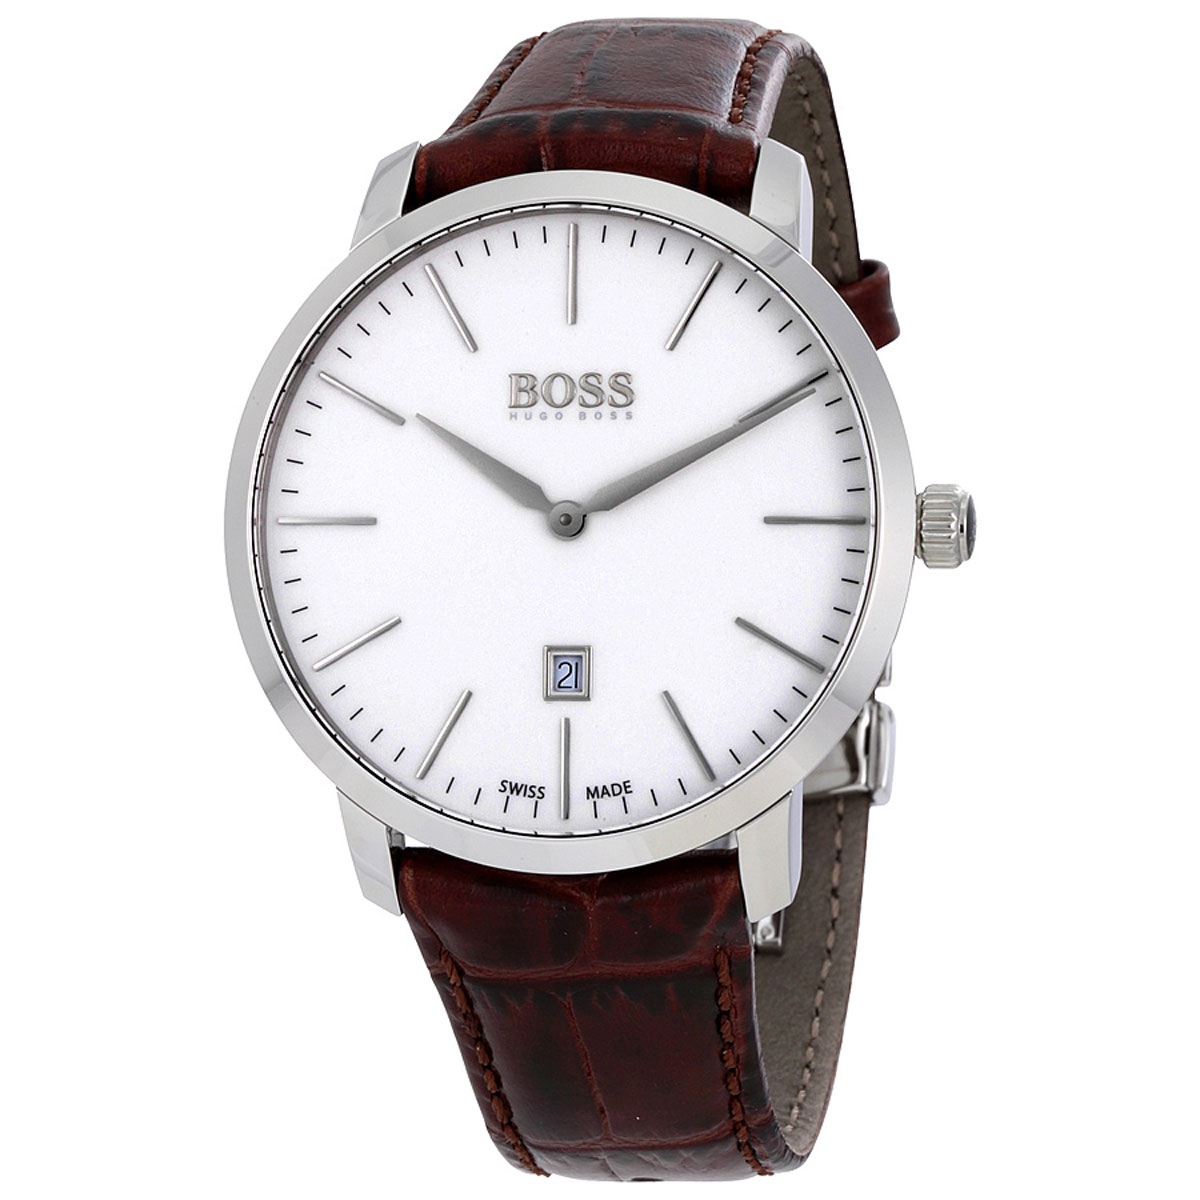 558fdd6b1528 Hugo Boss Watch with stainless steel and brown leather strap 1513255. Tap  to expand